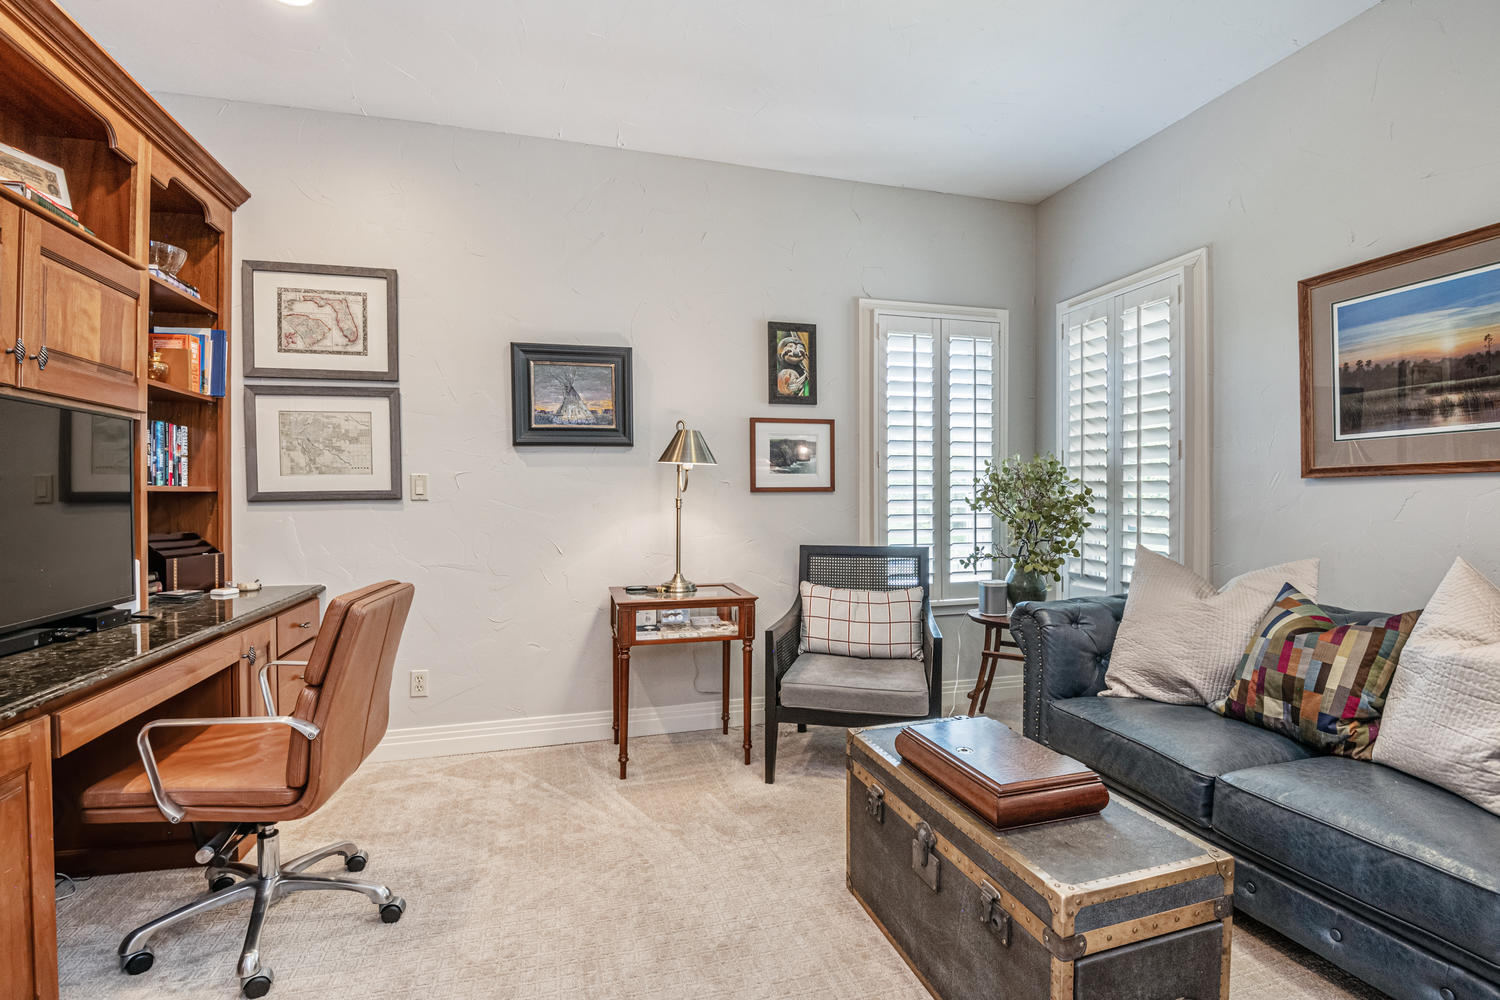 Great Office or Home School Space with Built-ins